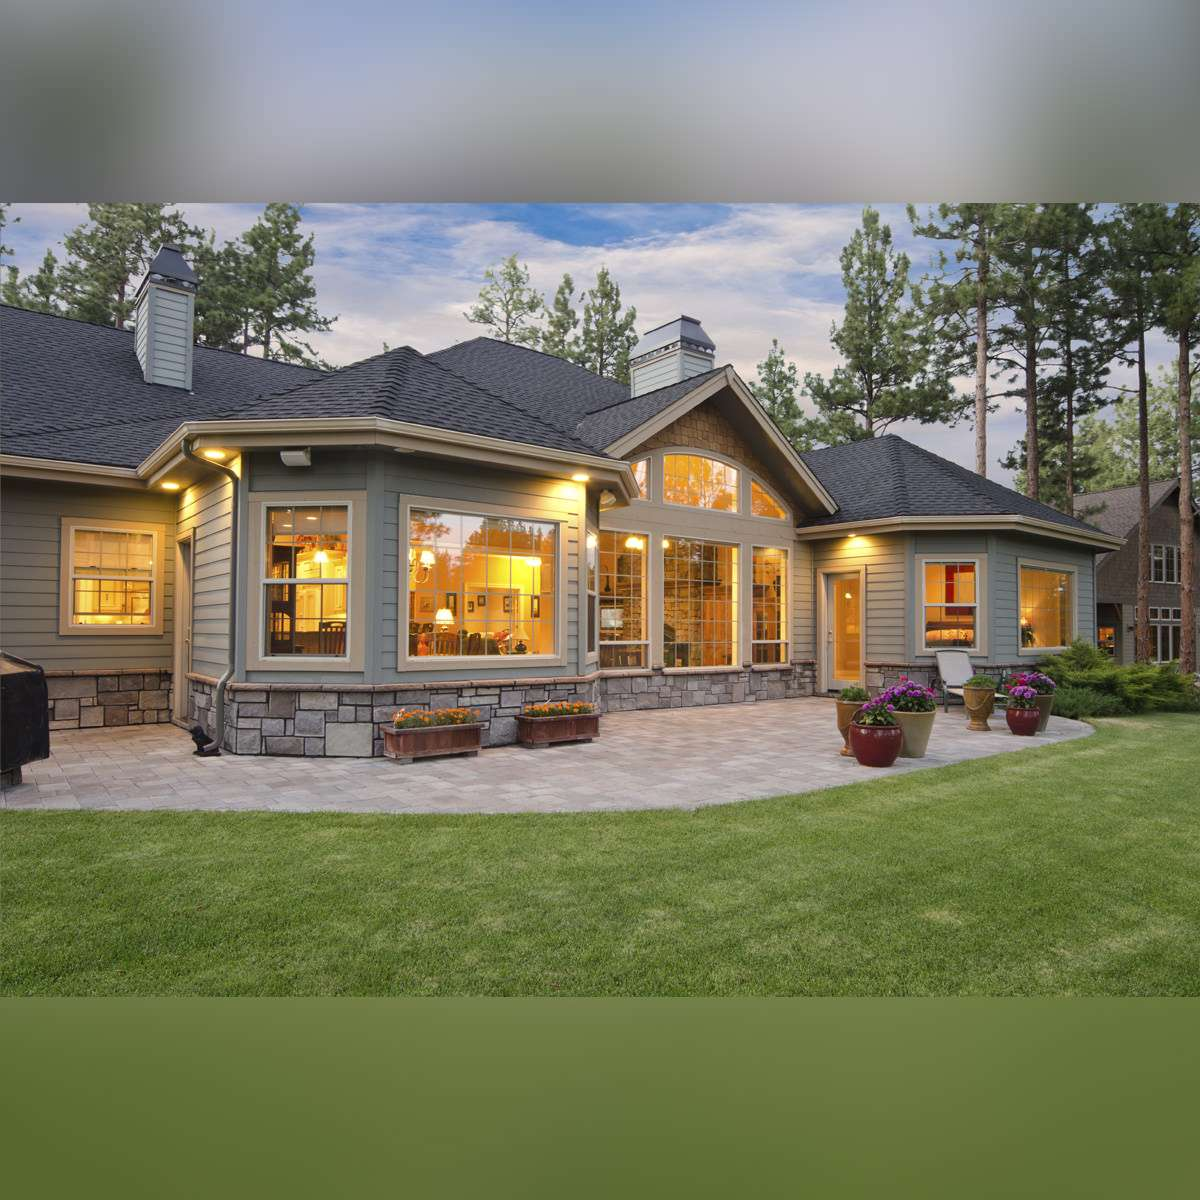 Backyard big house with grey roof and Alumhybrid architectural windows.